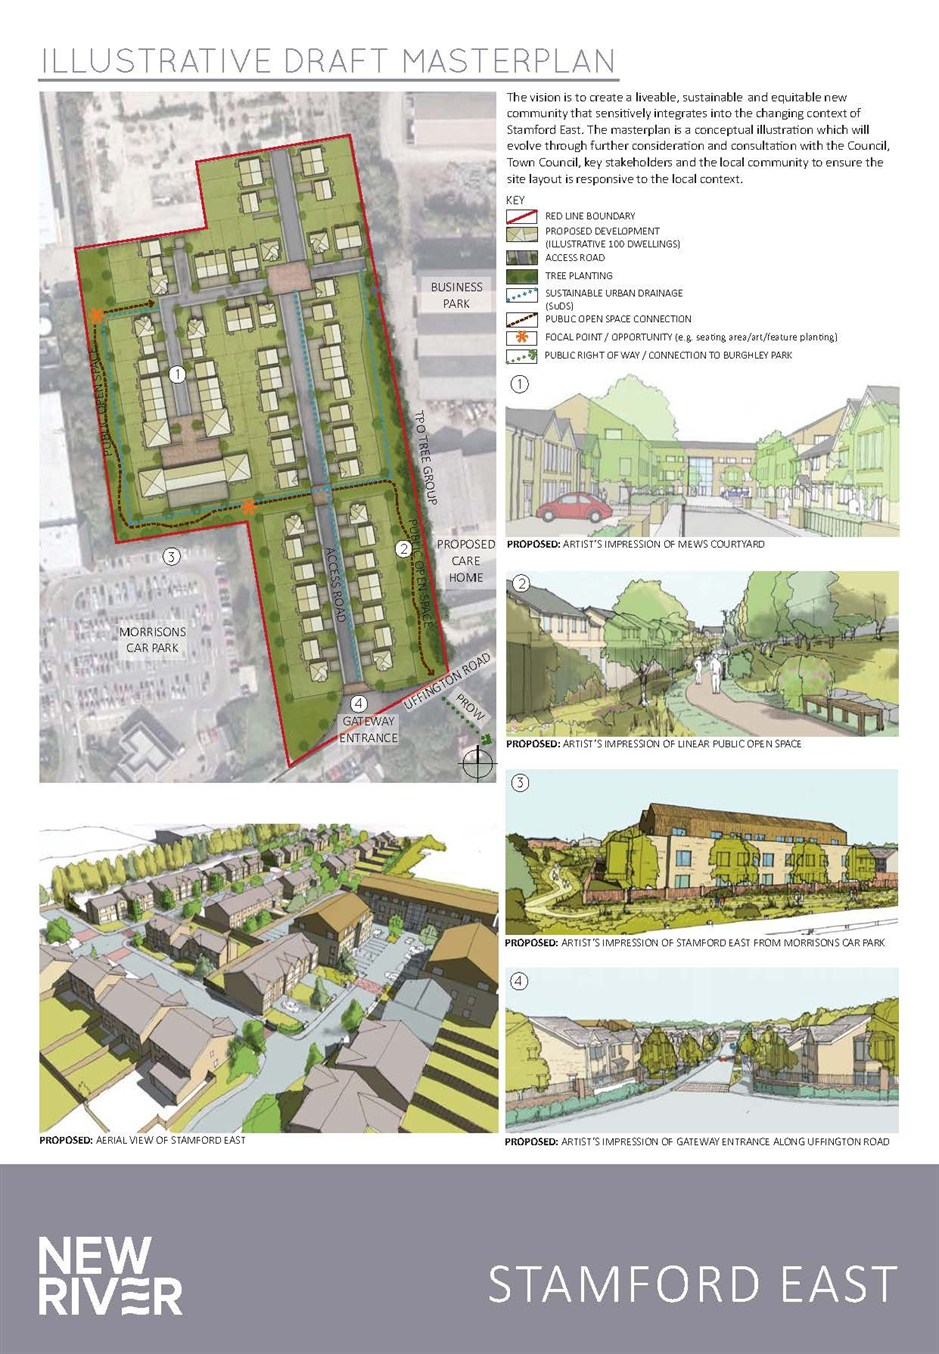 17 02 07 Stamford East Public Consultation Boards Reduced To A4 Page 6